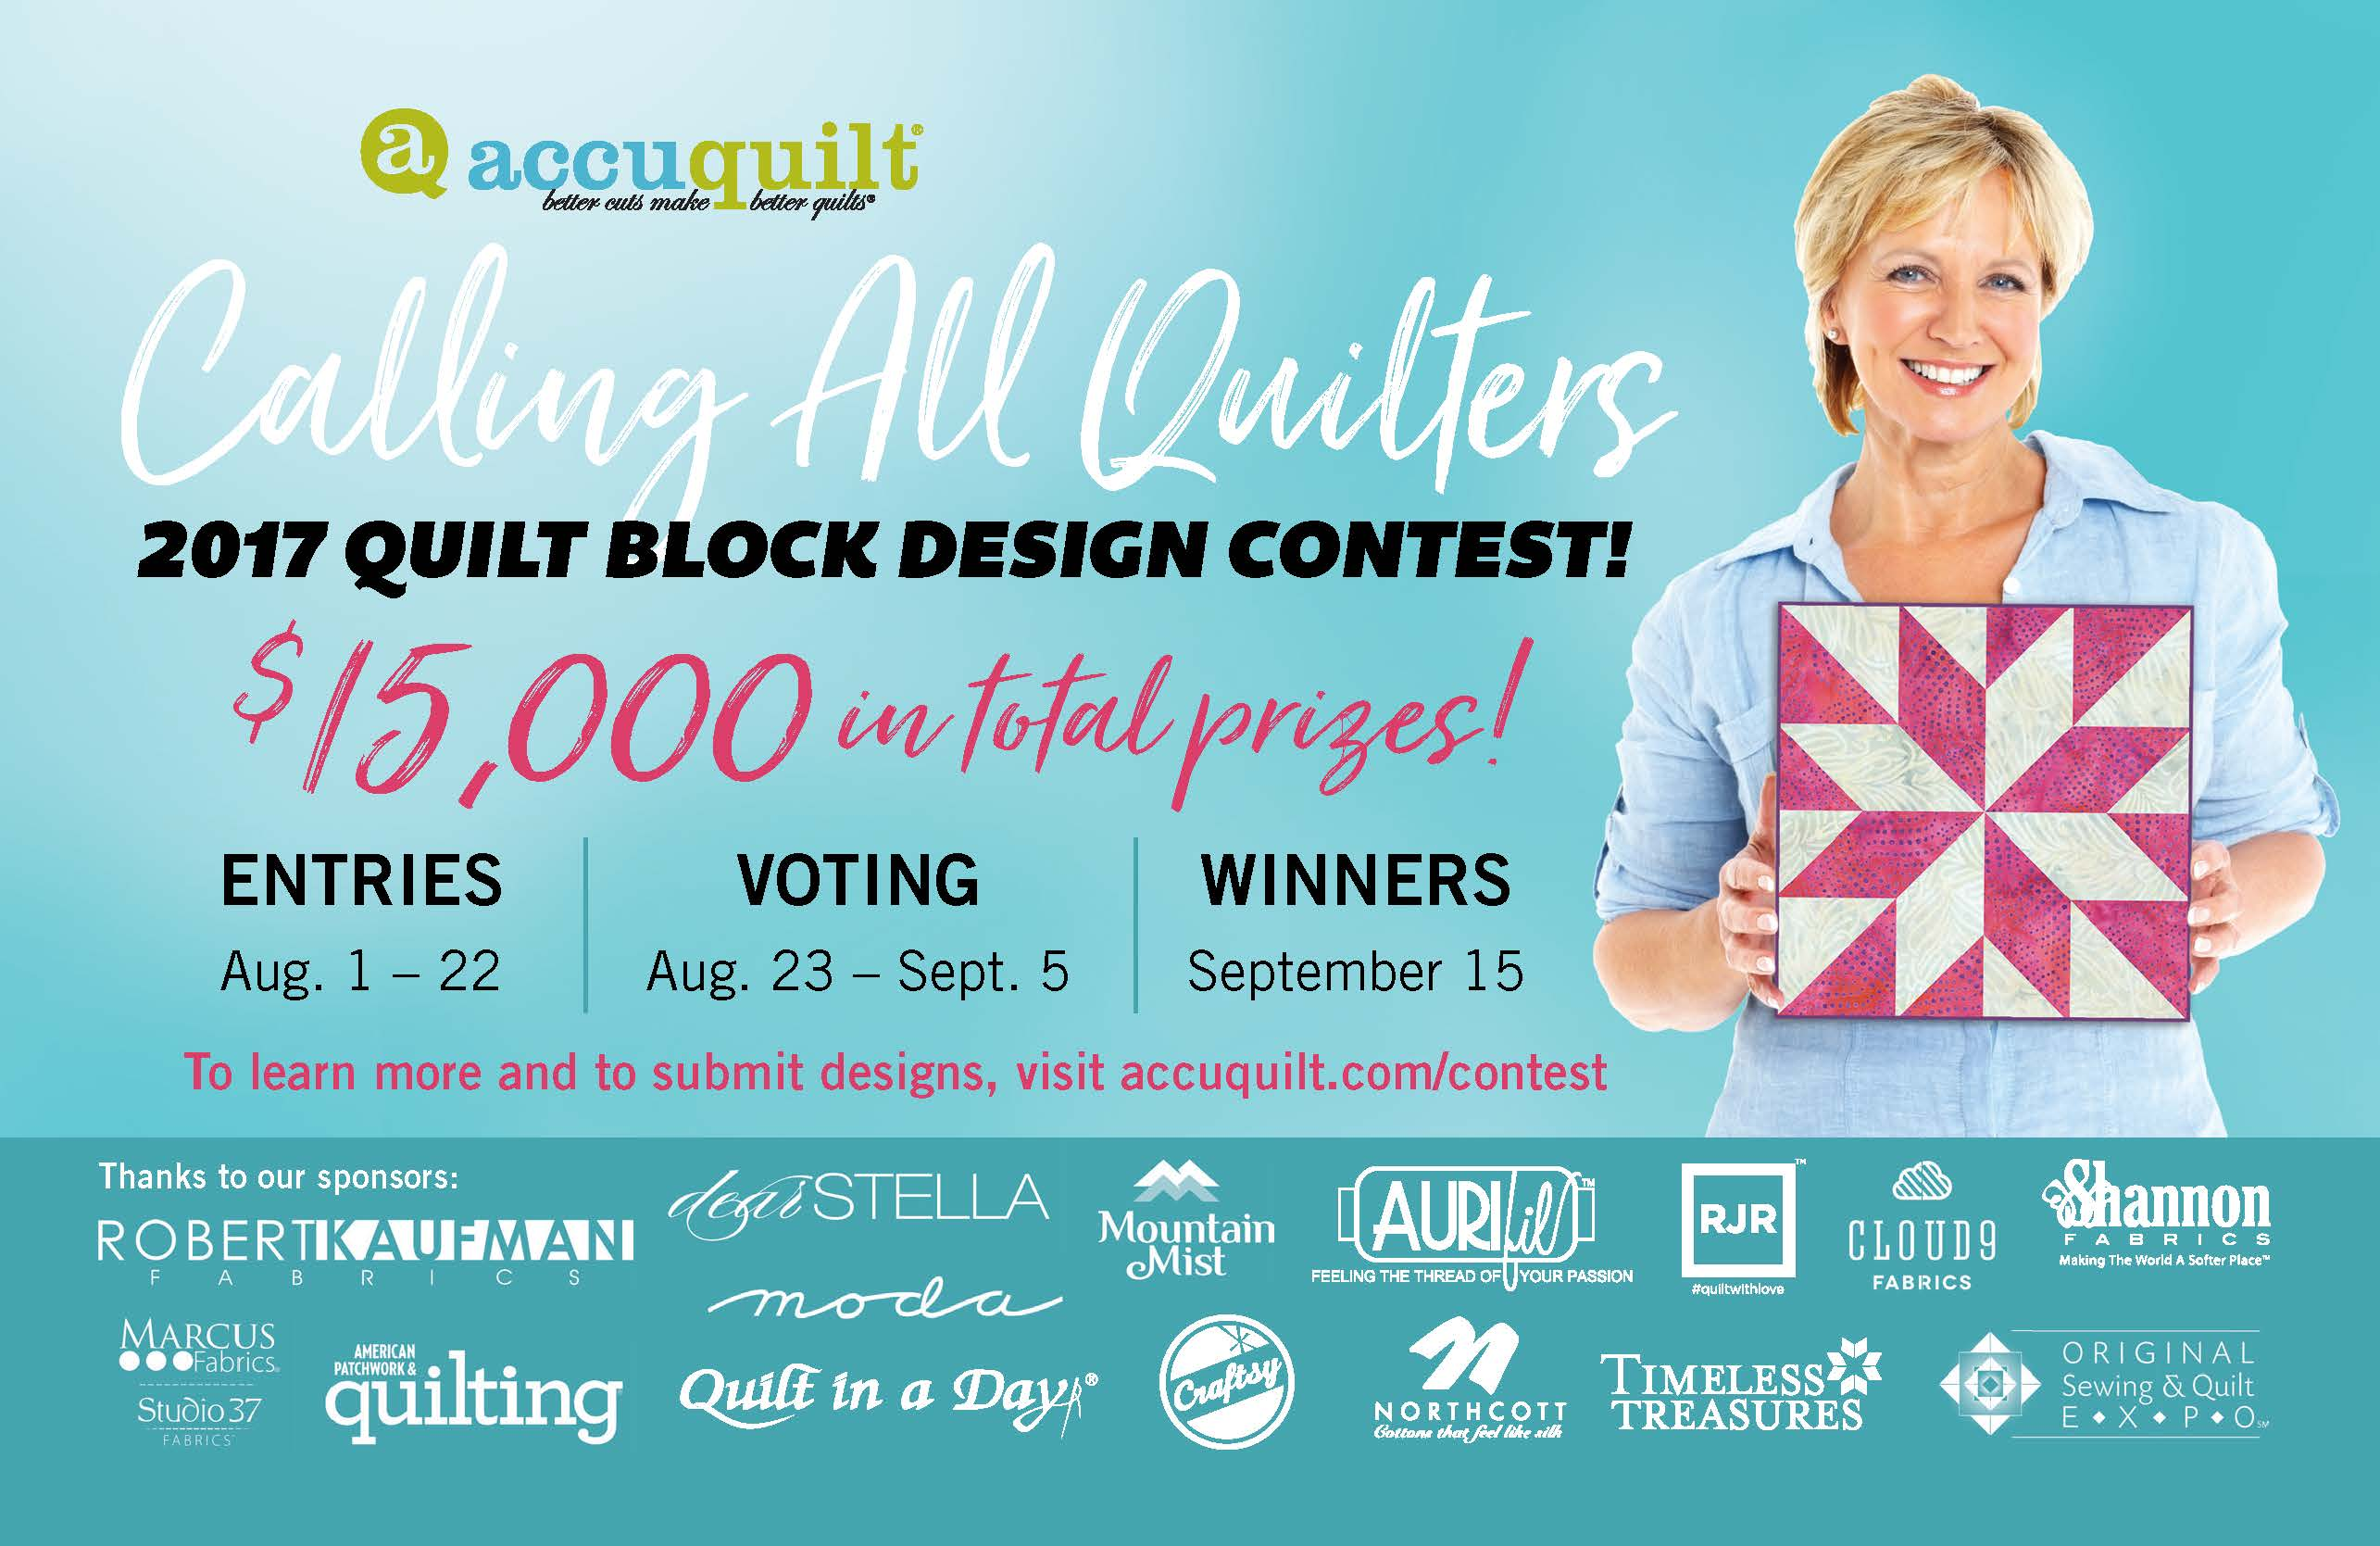 Calling all quilt artists